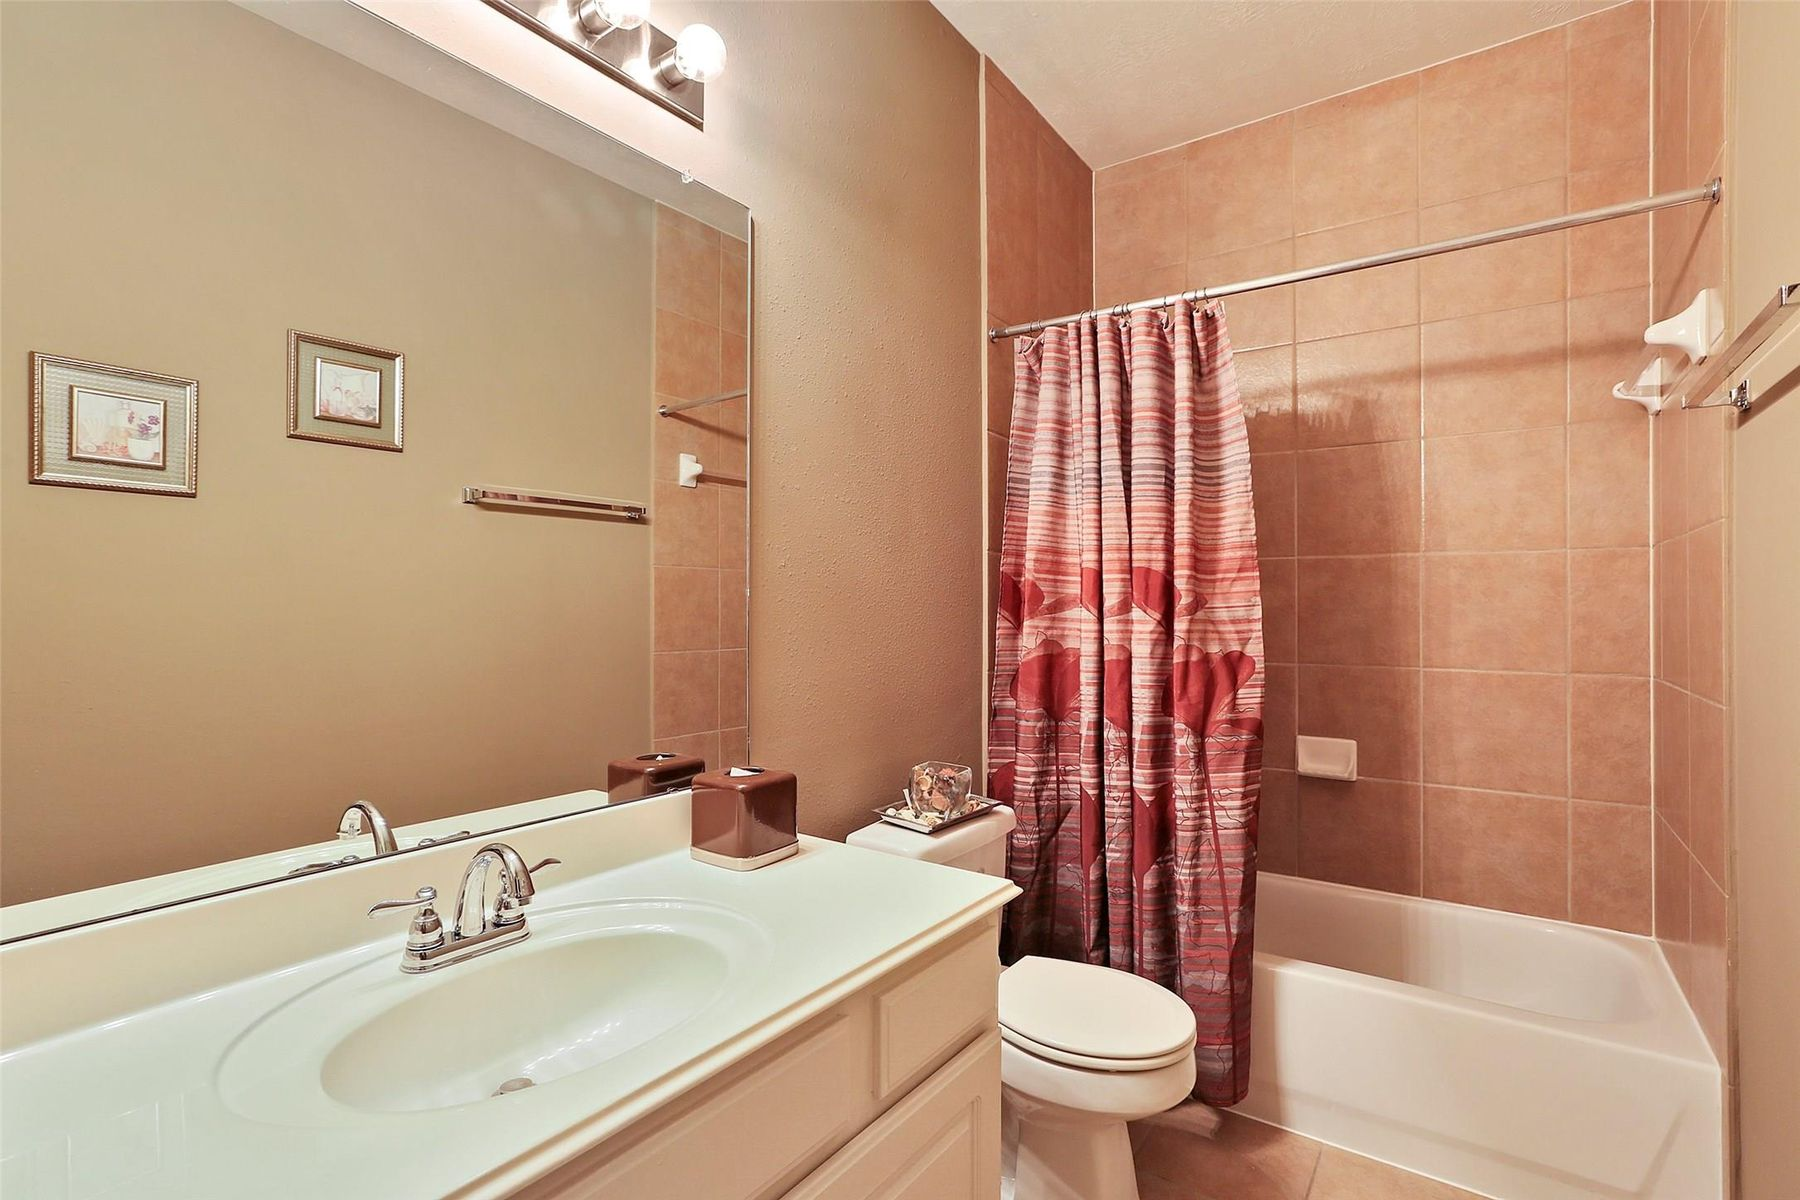 Additional photo for property listing at 14718 Golden Bough Lane Humble, Texas 77396 United States